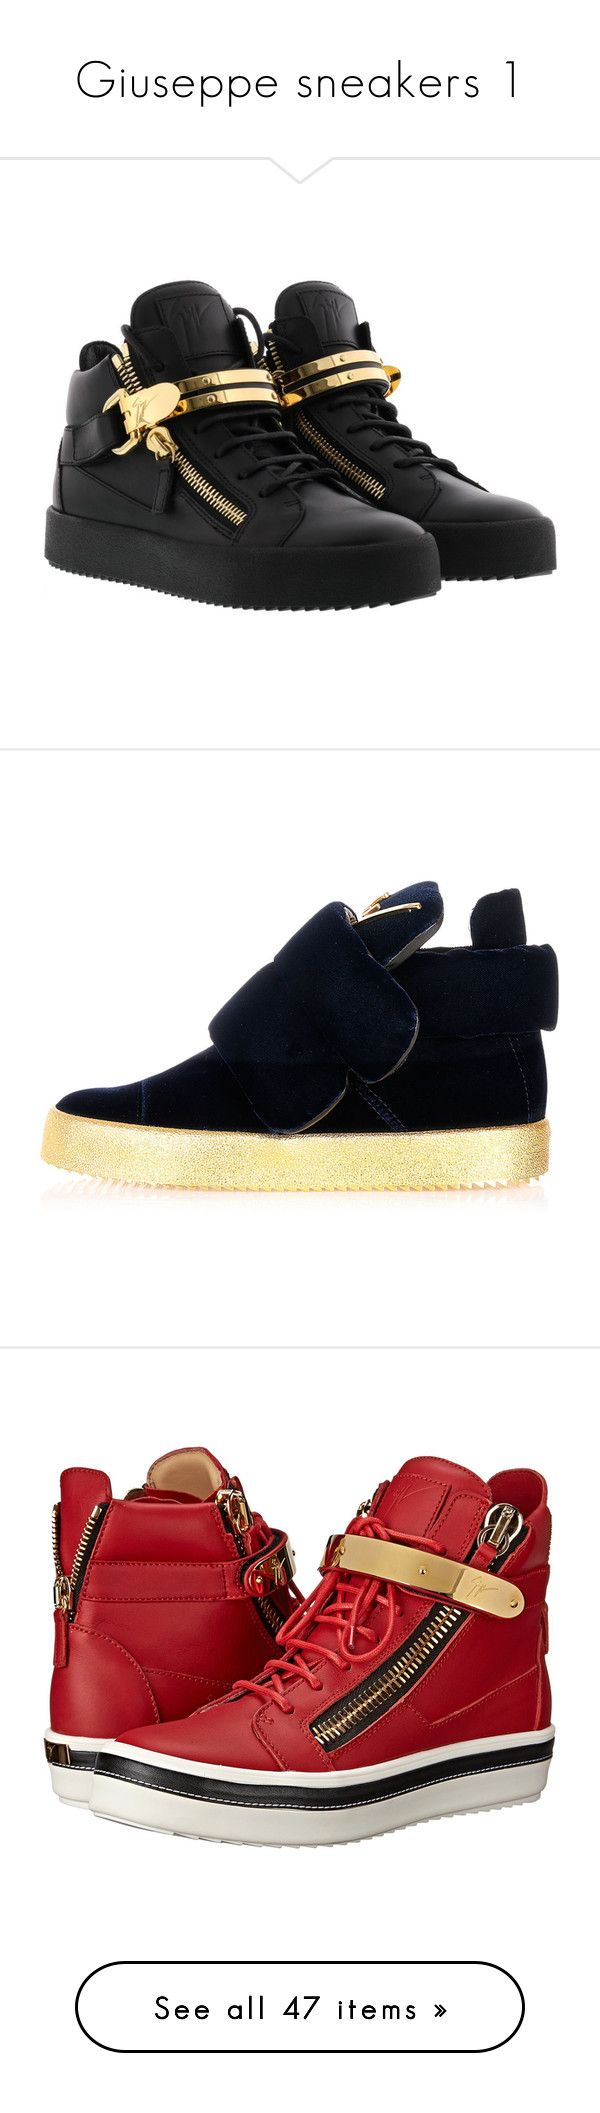 """Giuseppe sneakers 1"" by missy-smallen ❤ liked on Polyvore featuring shoes, platform shoes, velcro strap shoes, velcro closure shoes, wedge sneaker shoes, laced shoes, sneakers, black, giuseppe zanotti sneakers and kohl shoes"